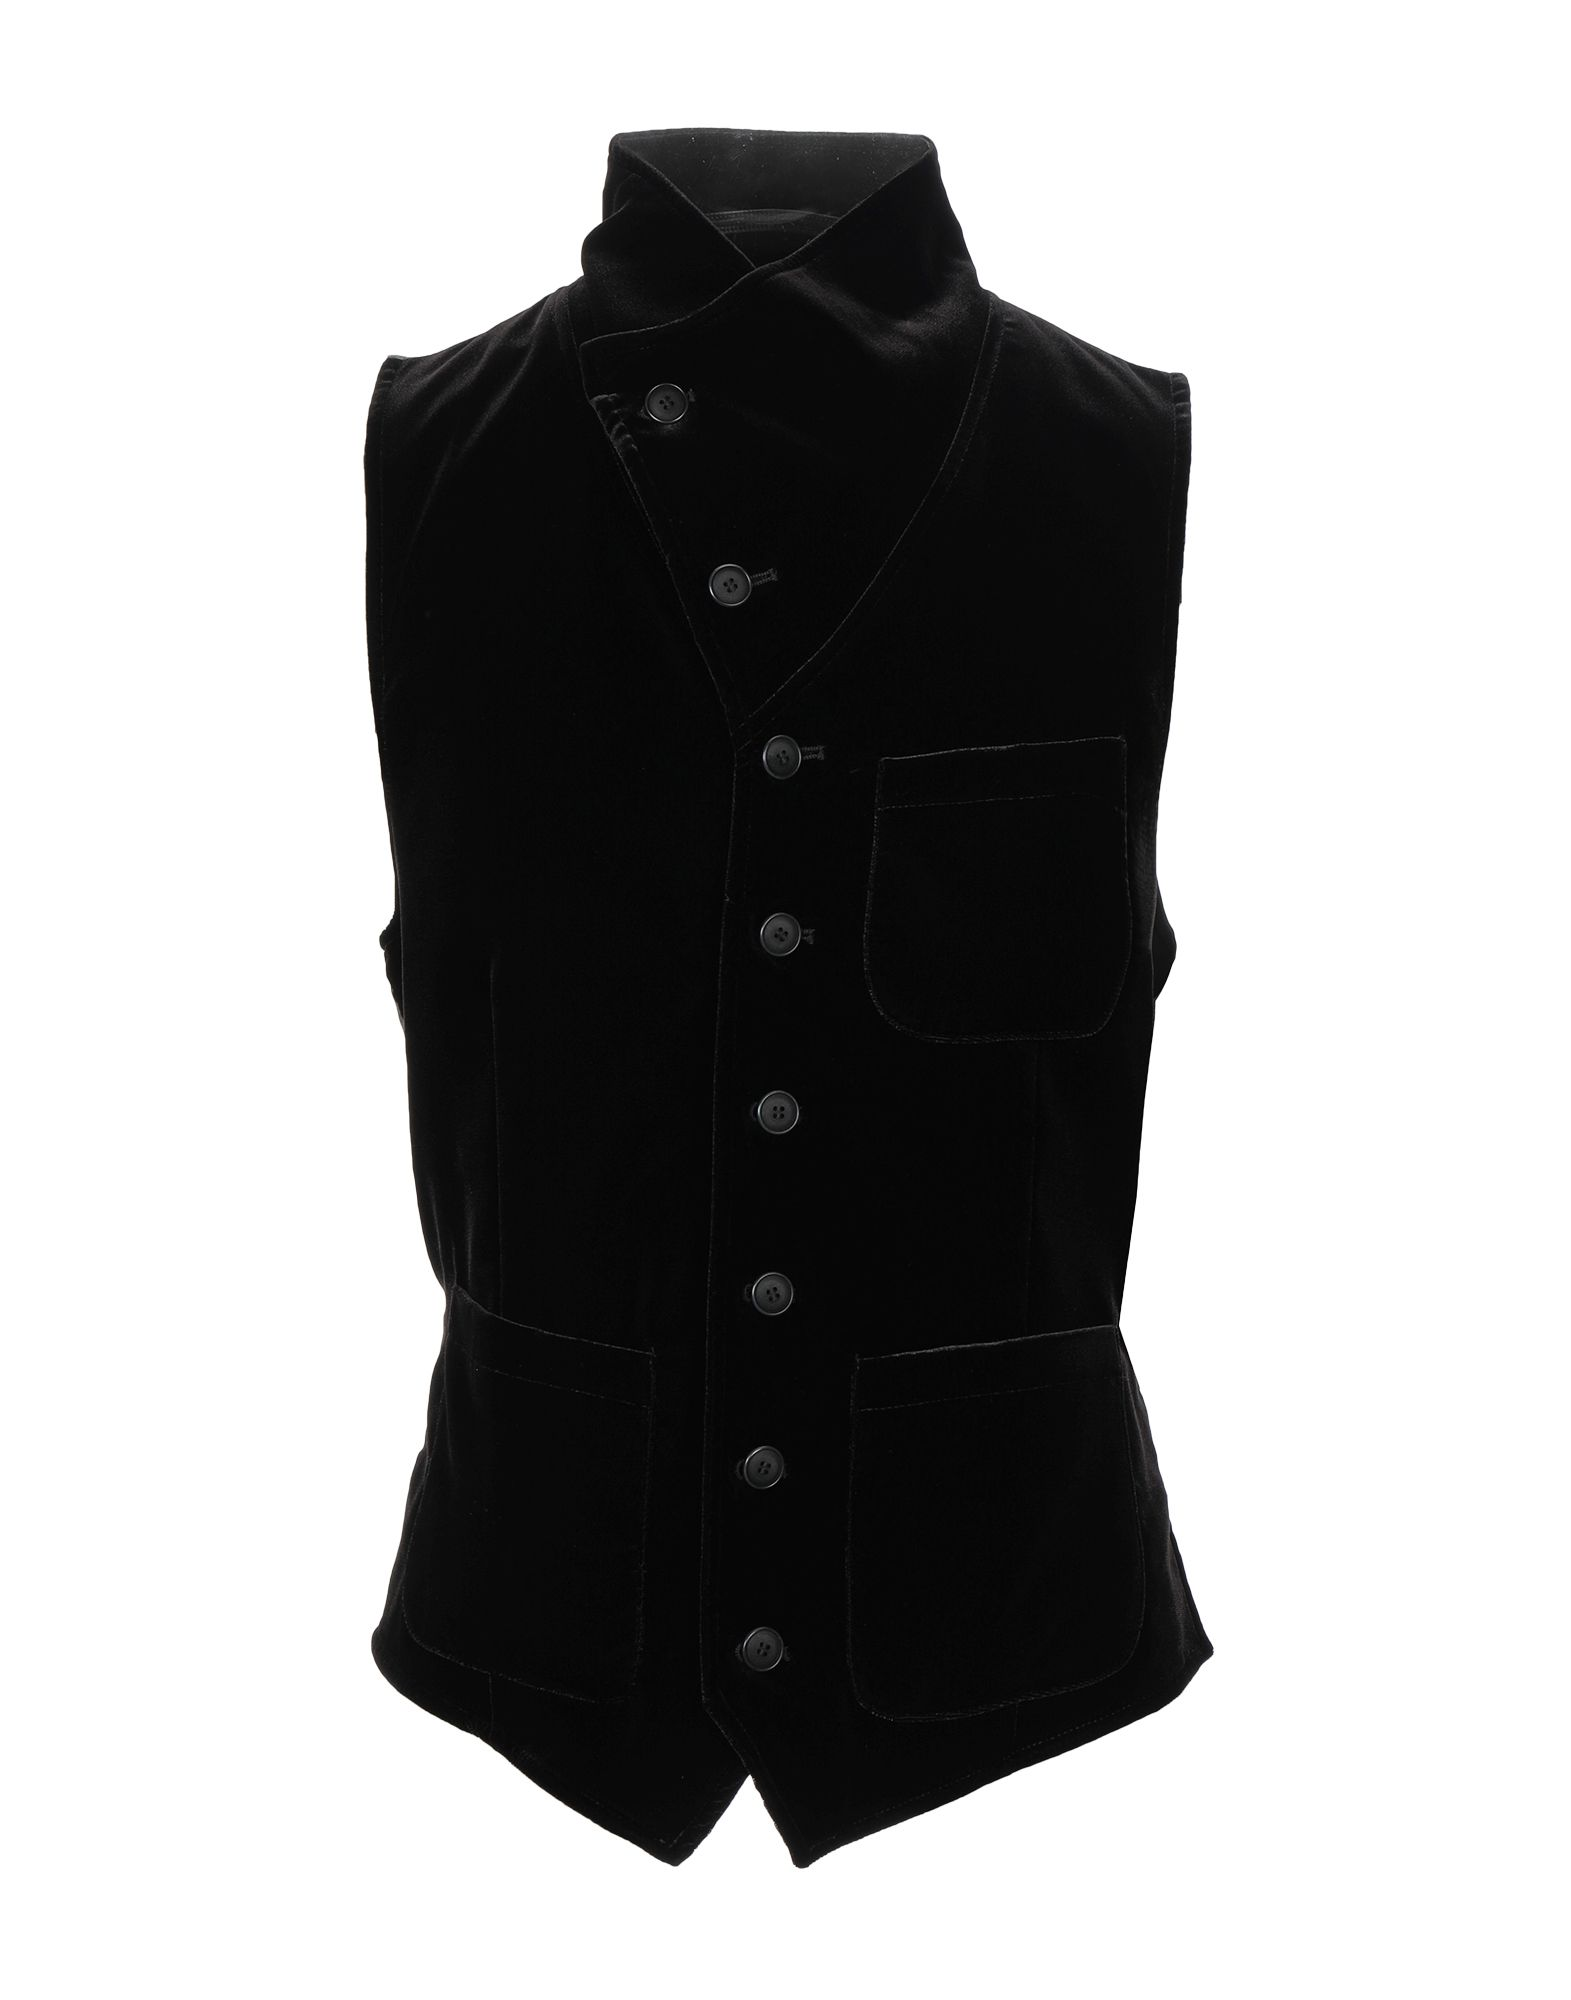 GIORGIO ARMANI Vests. chenille, no appliqués, solid color, multipockets, single chest pocket, button closing, lapel collar, single-breasted, sleeveless, unlined, stretch. 66% Viscose, 32% Cupro, 2% Elastane